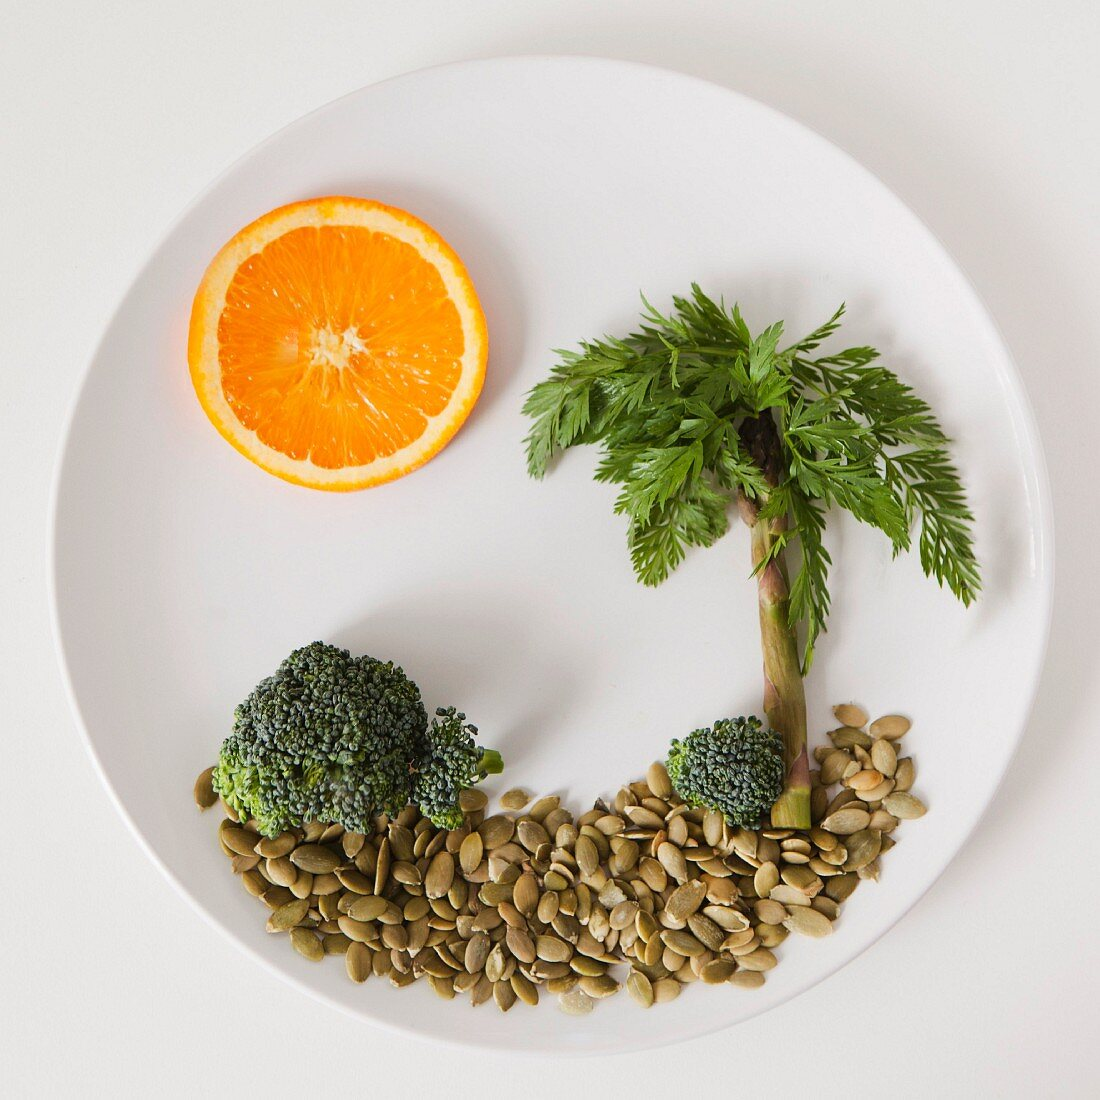 Palm tree on plate made out of food, studio shot